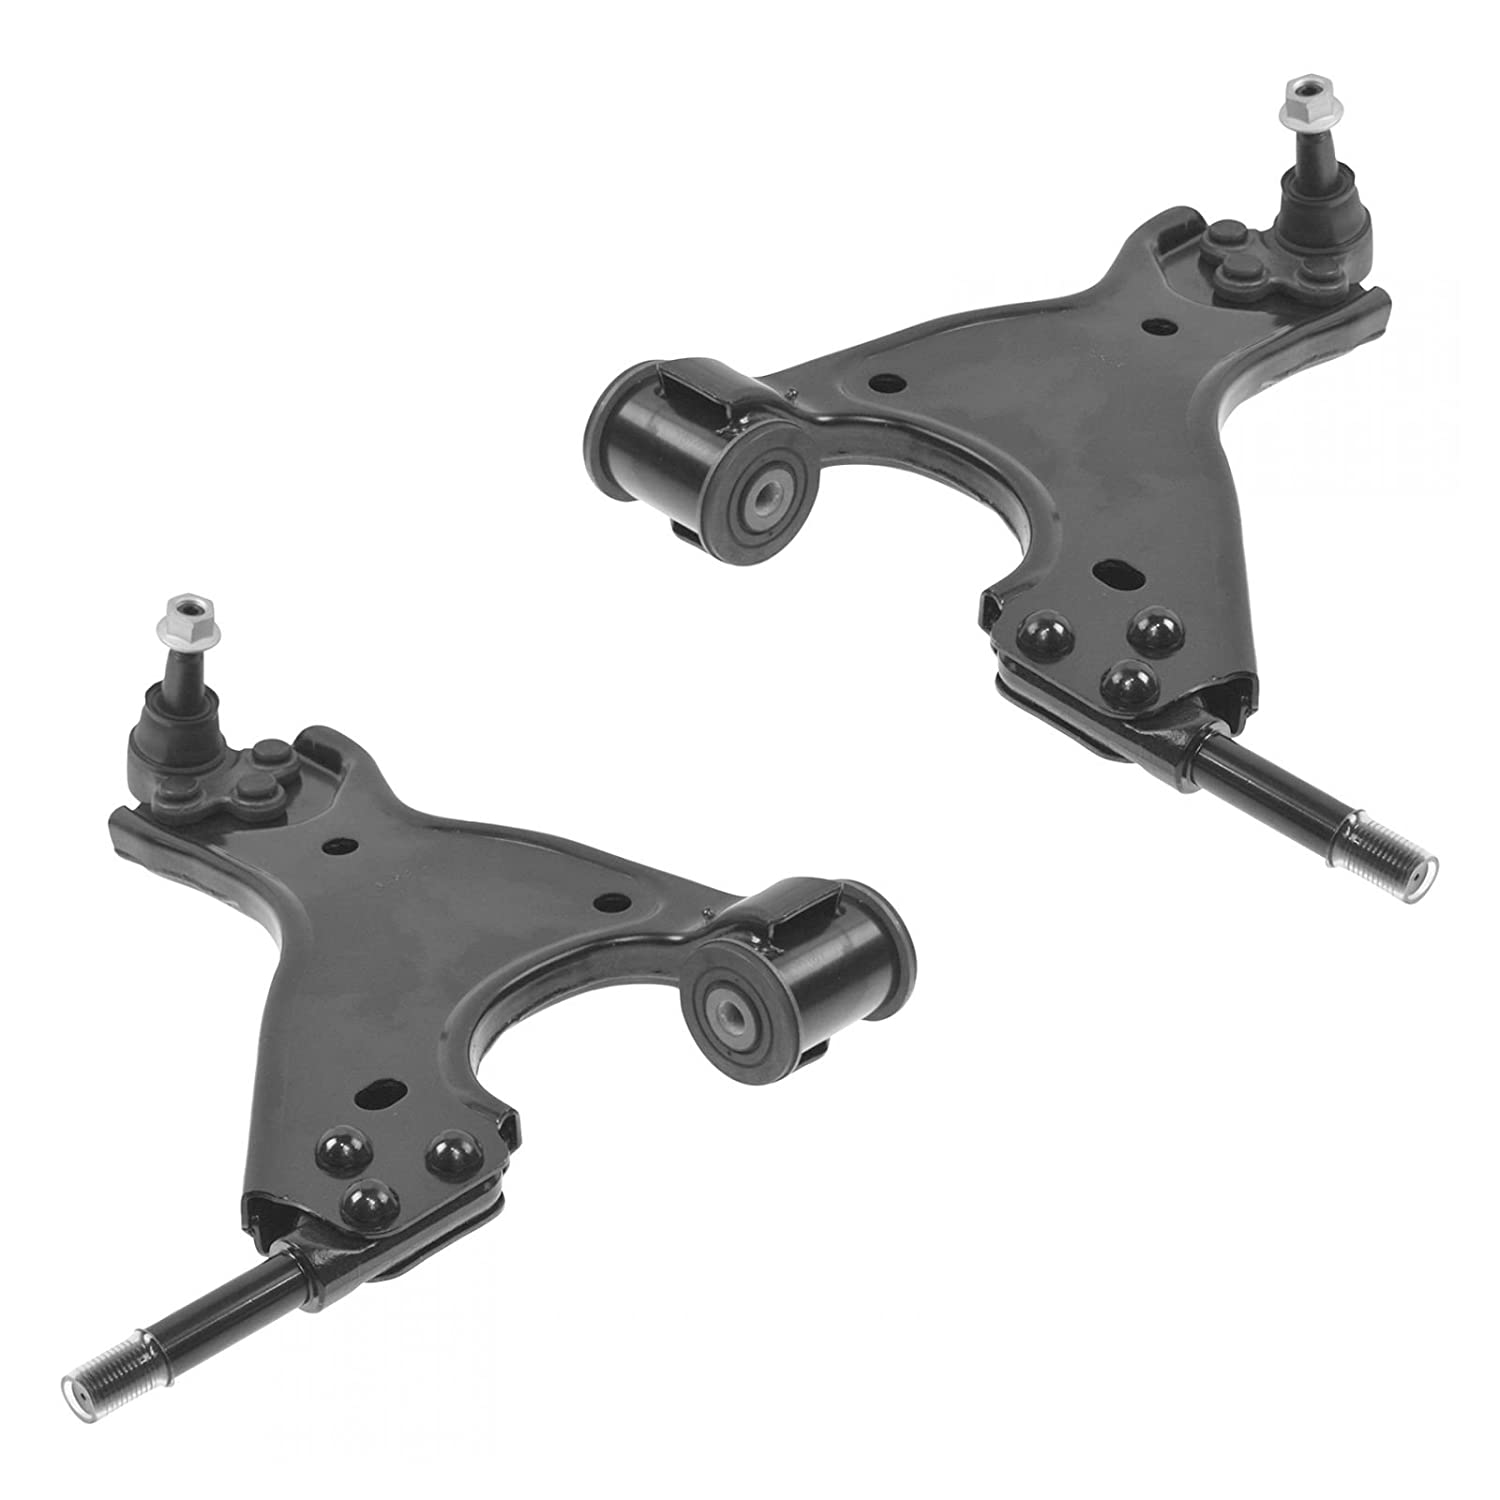 Prime Choice Auto Parts CAK601019PR Pair of Front Left /& Right Lower Control Arms